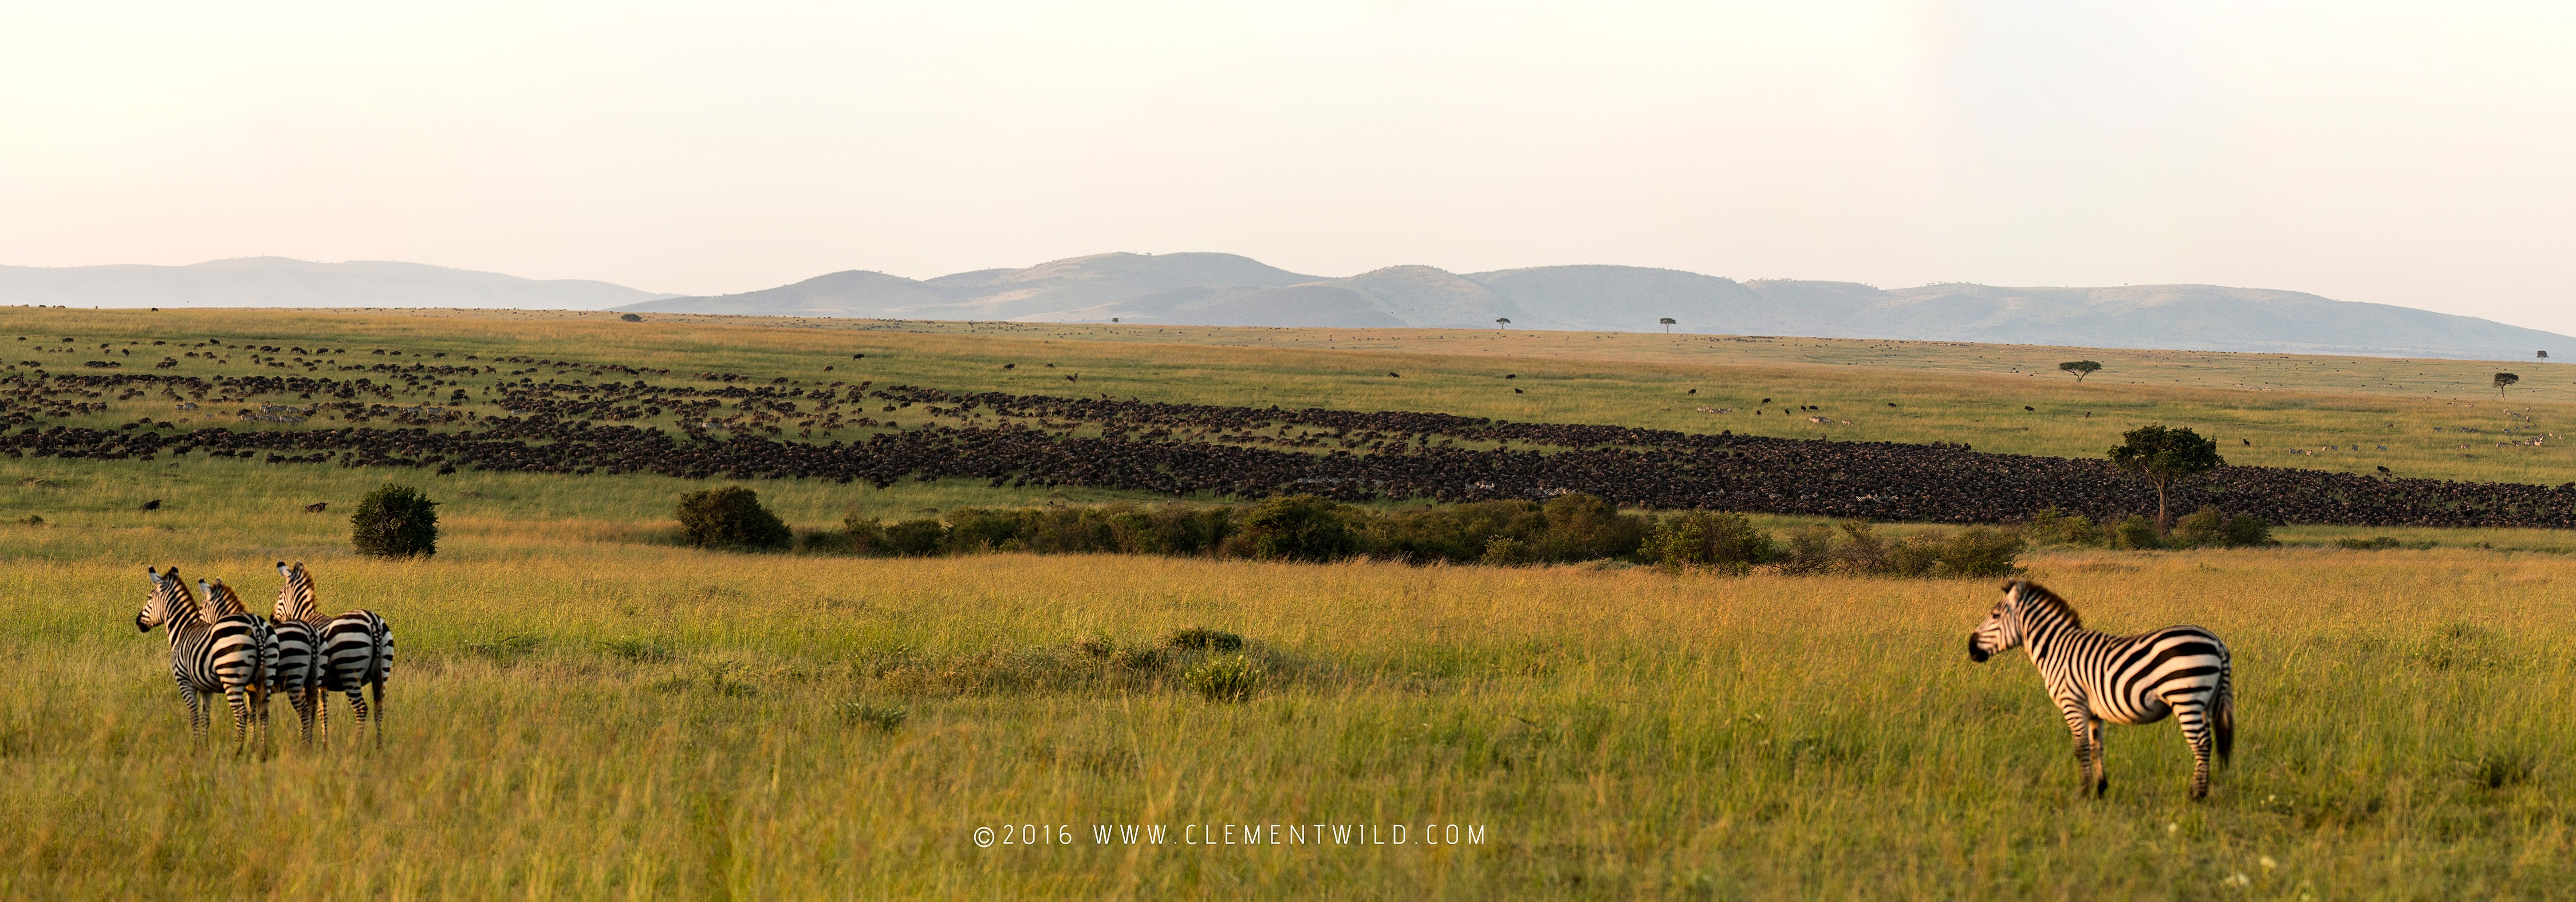 Herds-Panorama Great Wildebeest Migration, Wildlife Photography, Photographic Safaris, Clement Wild, Masai Mara